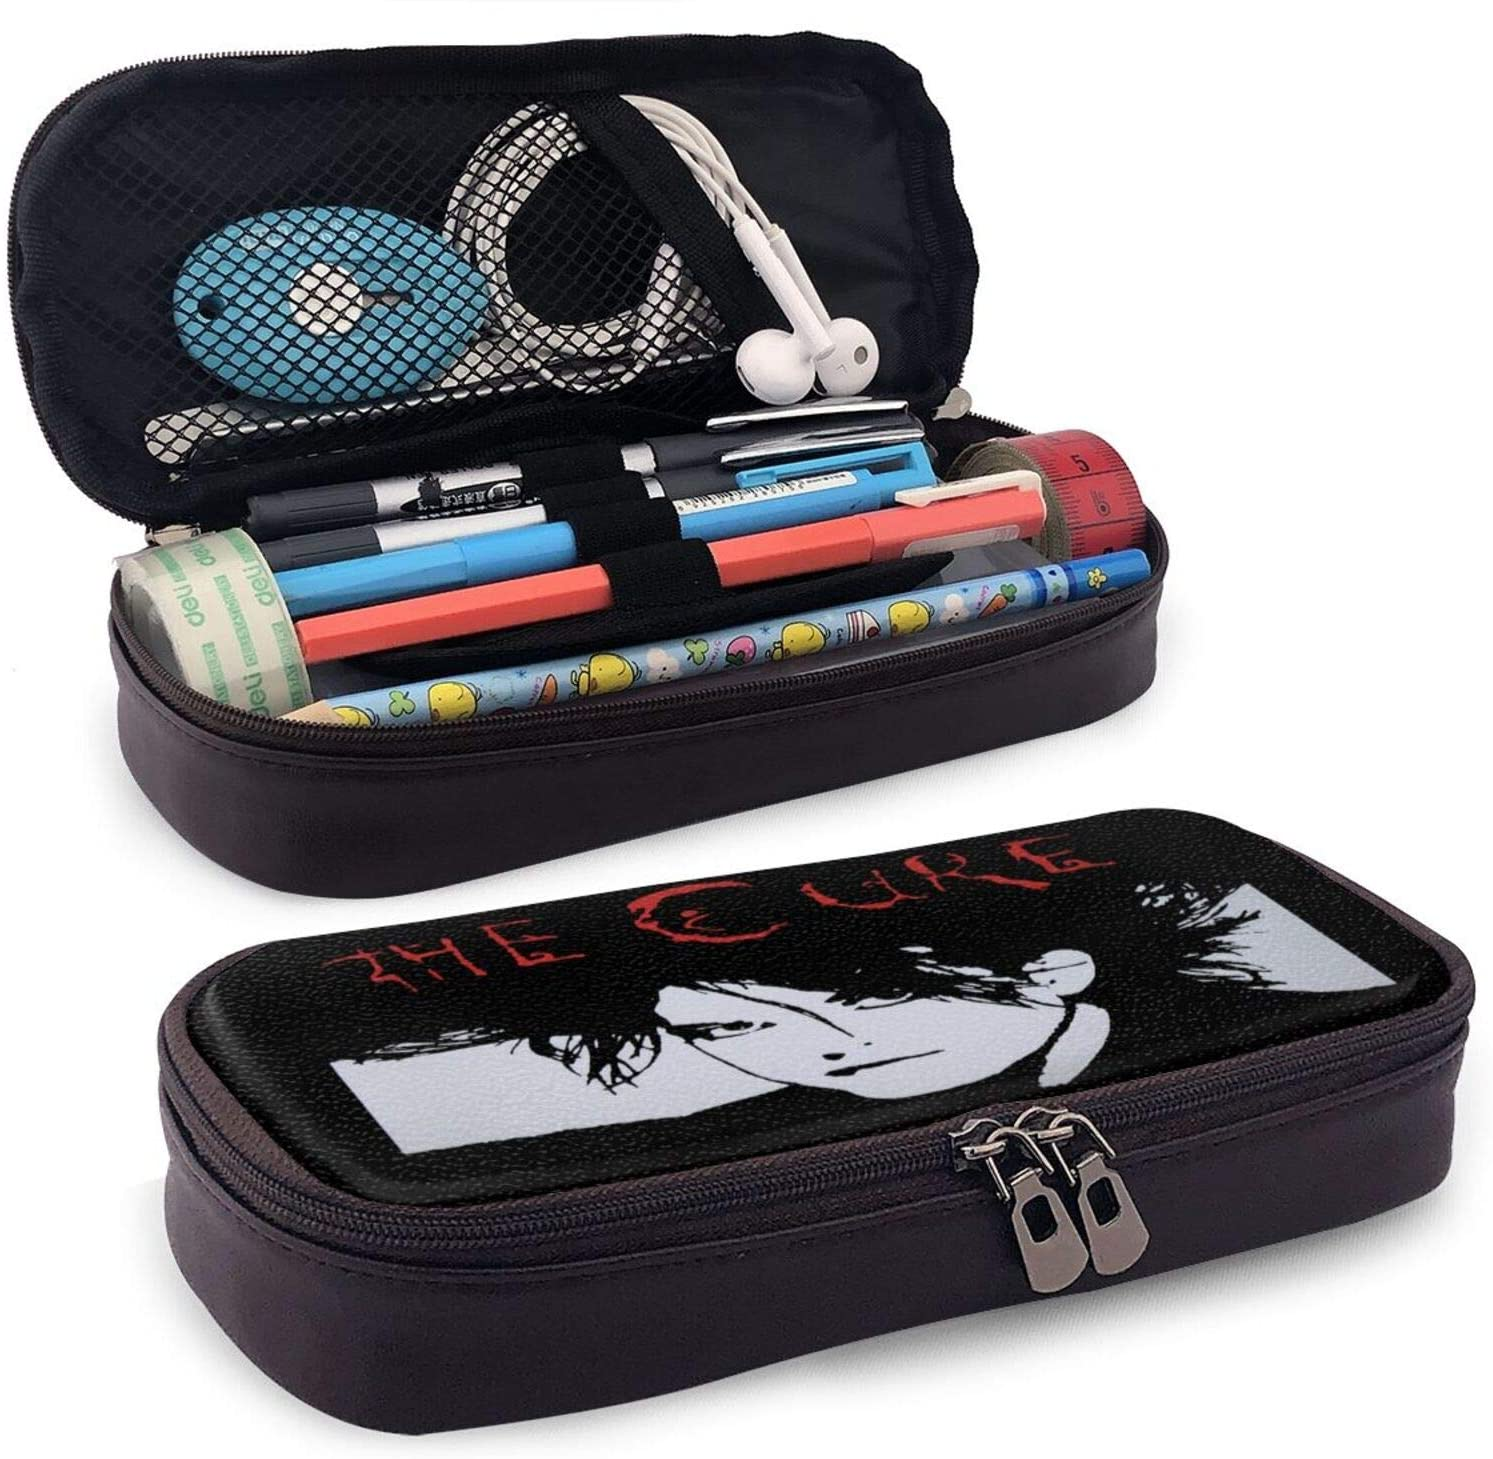 Robert Cure Smith Student Leather Pencil Case Large Capacity Pen Bag Supplies Stationery Makeup Box Organizer Pouch Double Zipper Waterproof Boys for School Office College